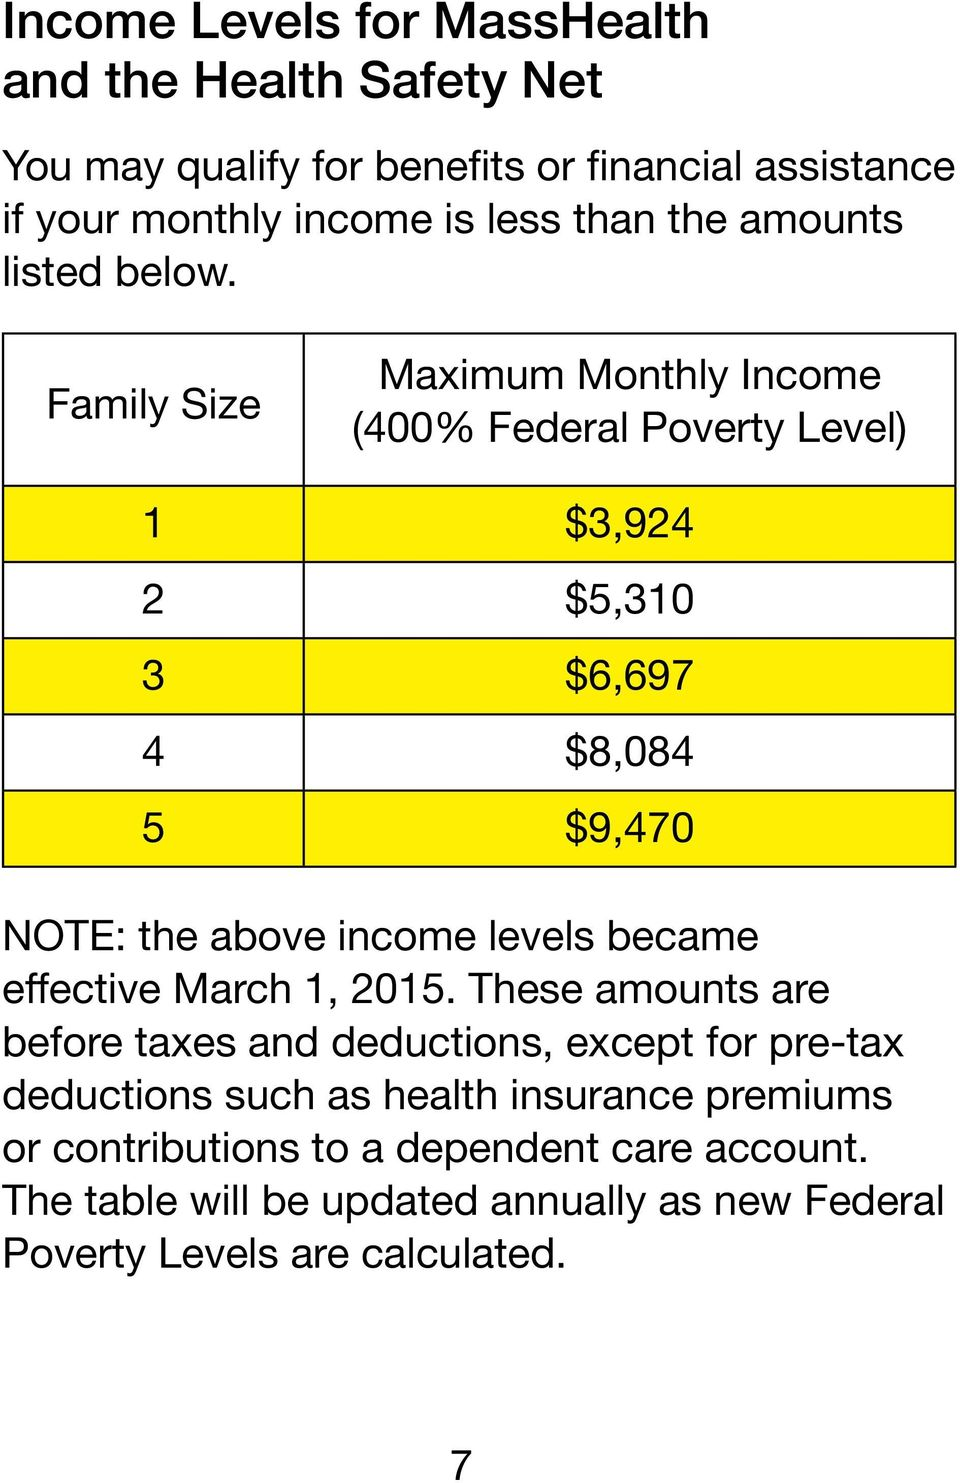 Family Size Maximum Monthly Income (400% Federal Poverty Level) 1 $3,924 2 $5,310 3 $6,697 4 $8,084 5 $9,470 NOTE: the above income levels